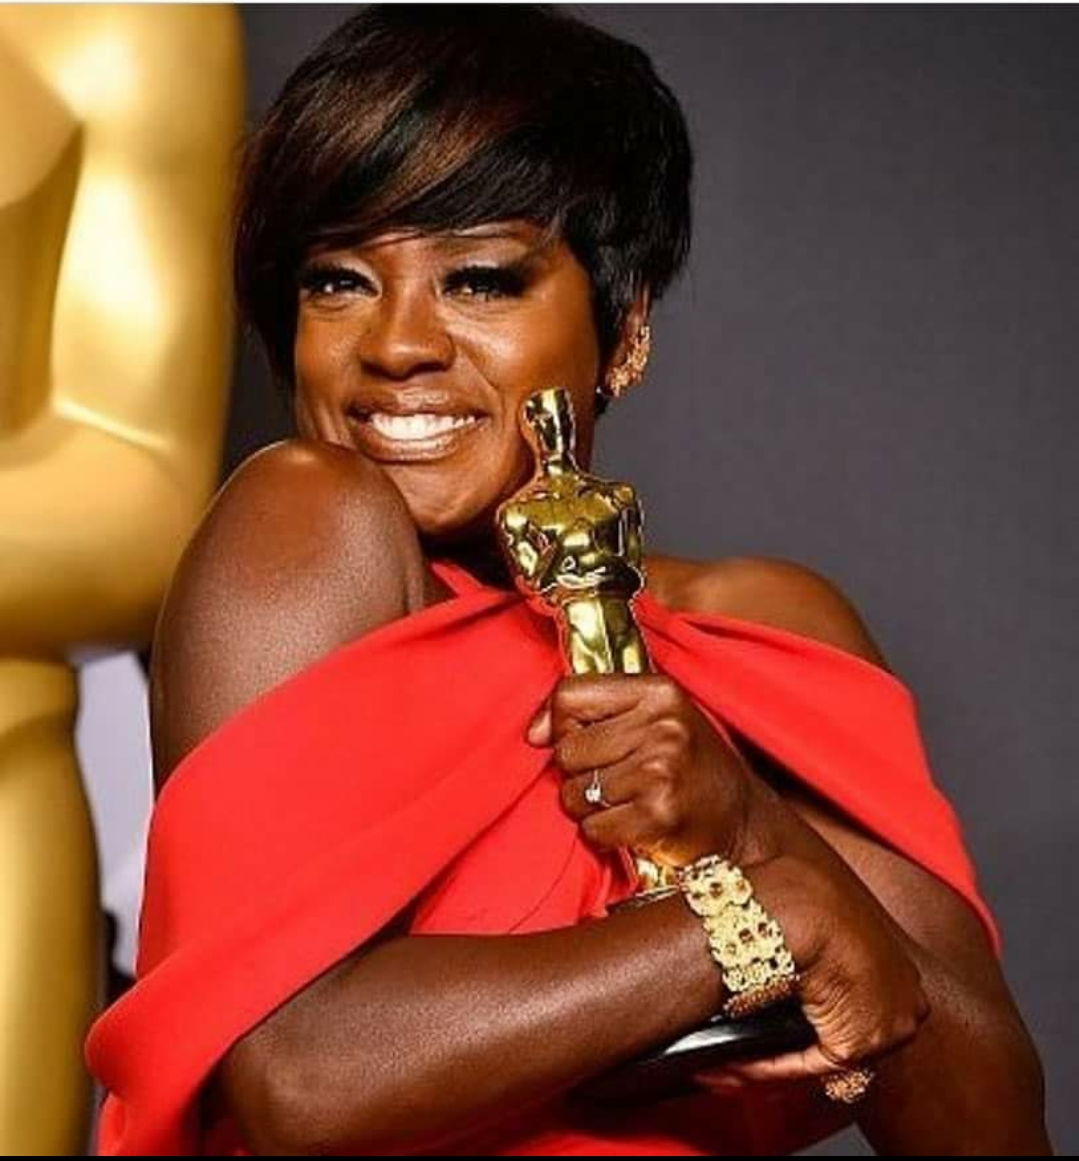 2015 Emmy, Outstanding Lead Actress In A Drama Series, How To Get Away  With Murder 2010 Tony, Leading Actress In A Play, Fences